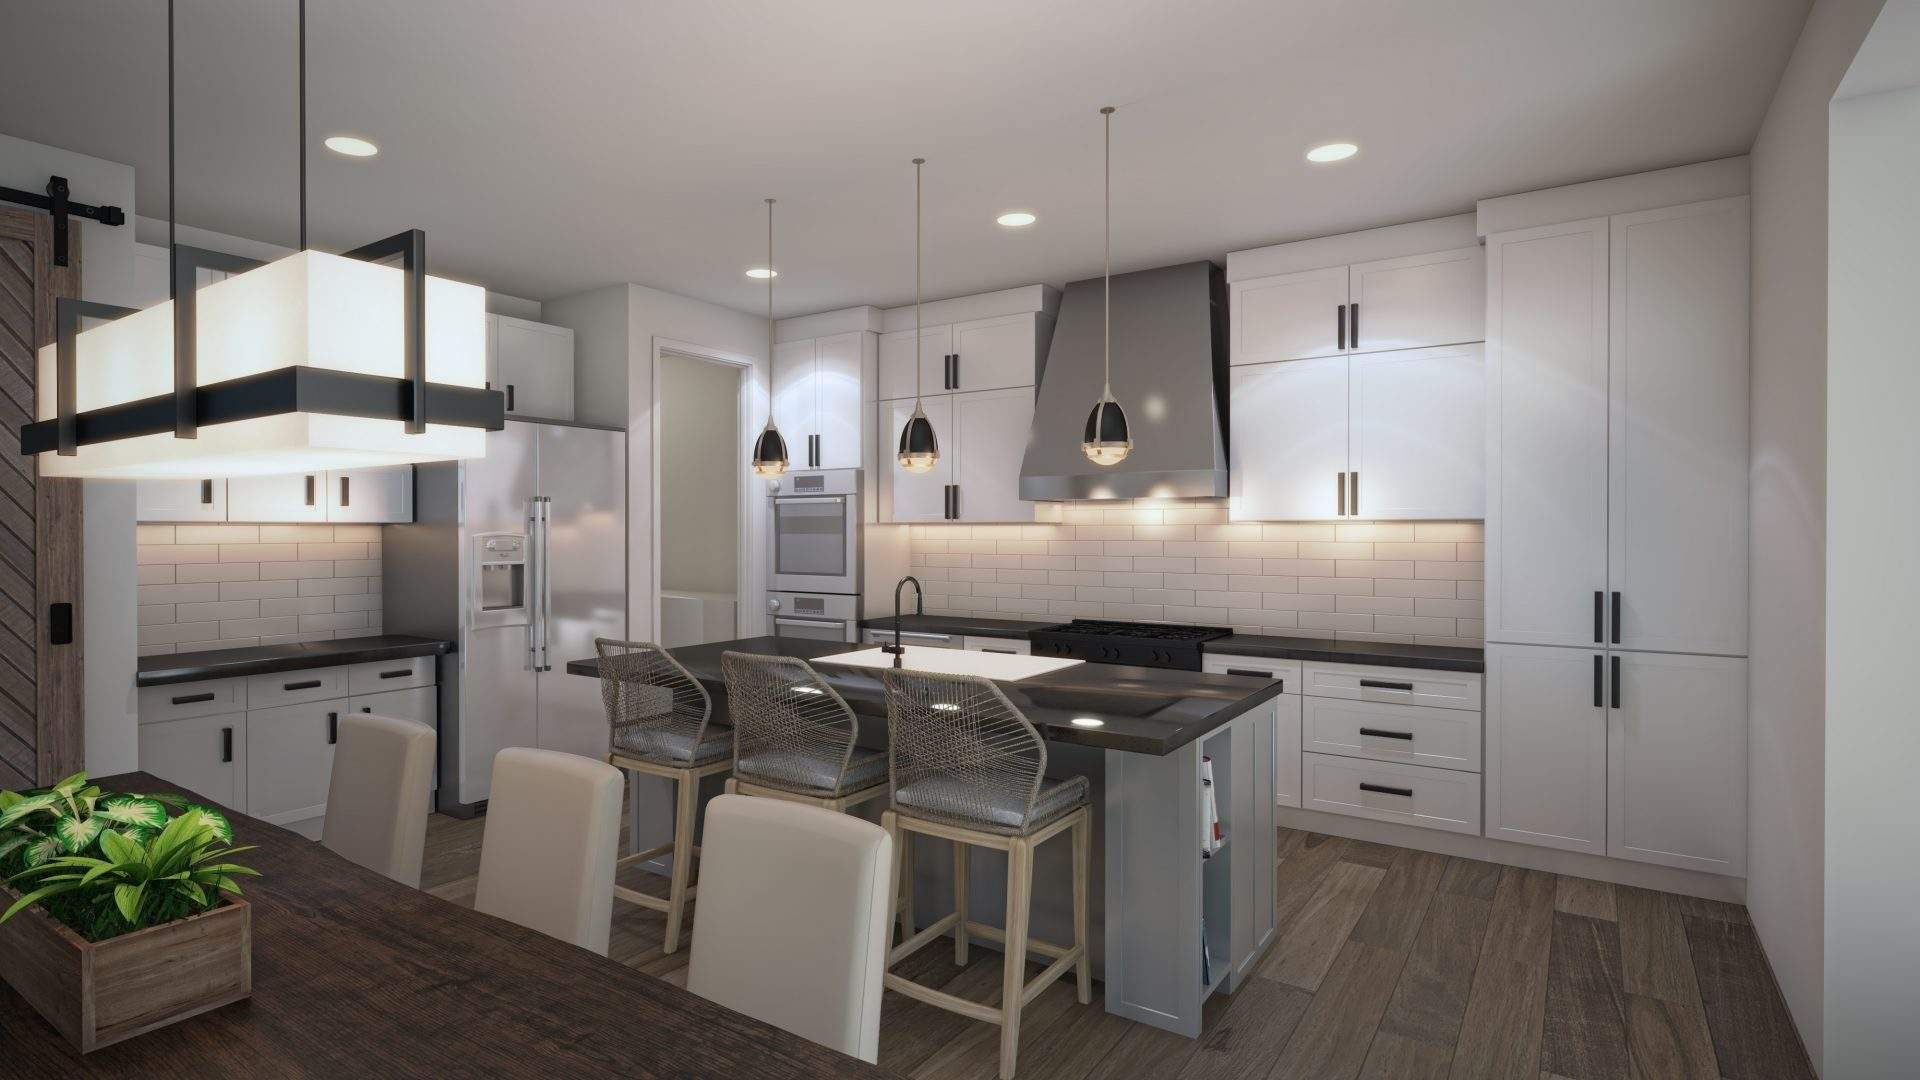 Etch Design Group - a new construction at Rabb Glen with black accents, herringbone tile flooring, quartz countertop, and grey cabinets.